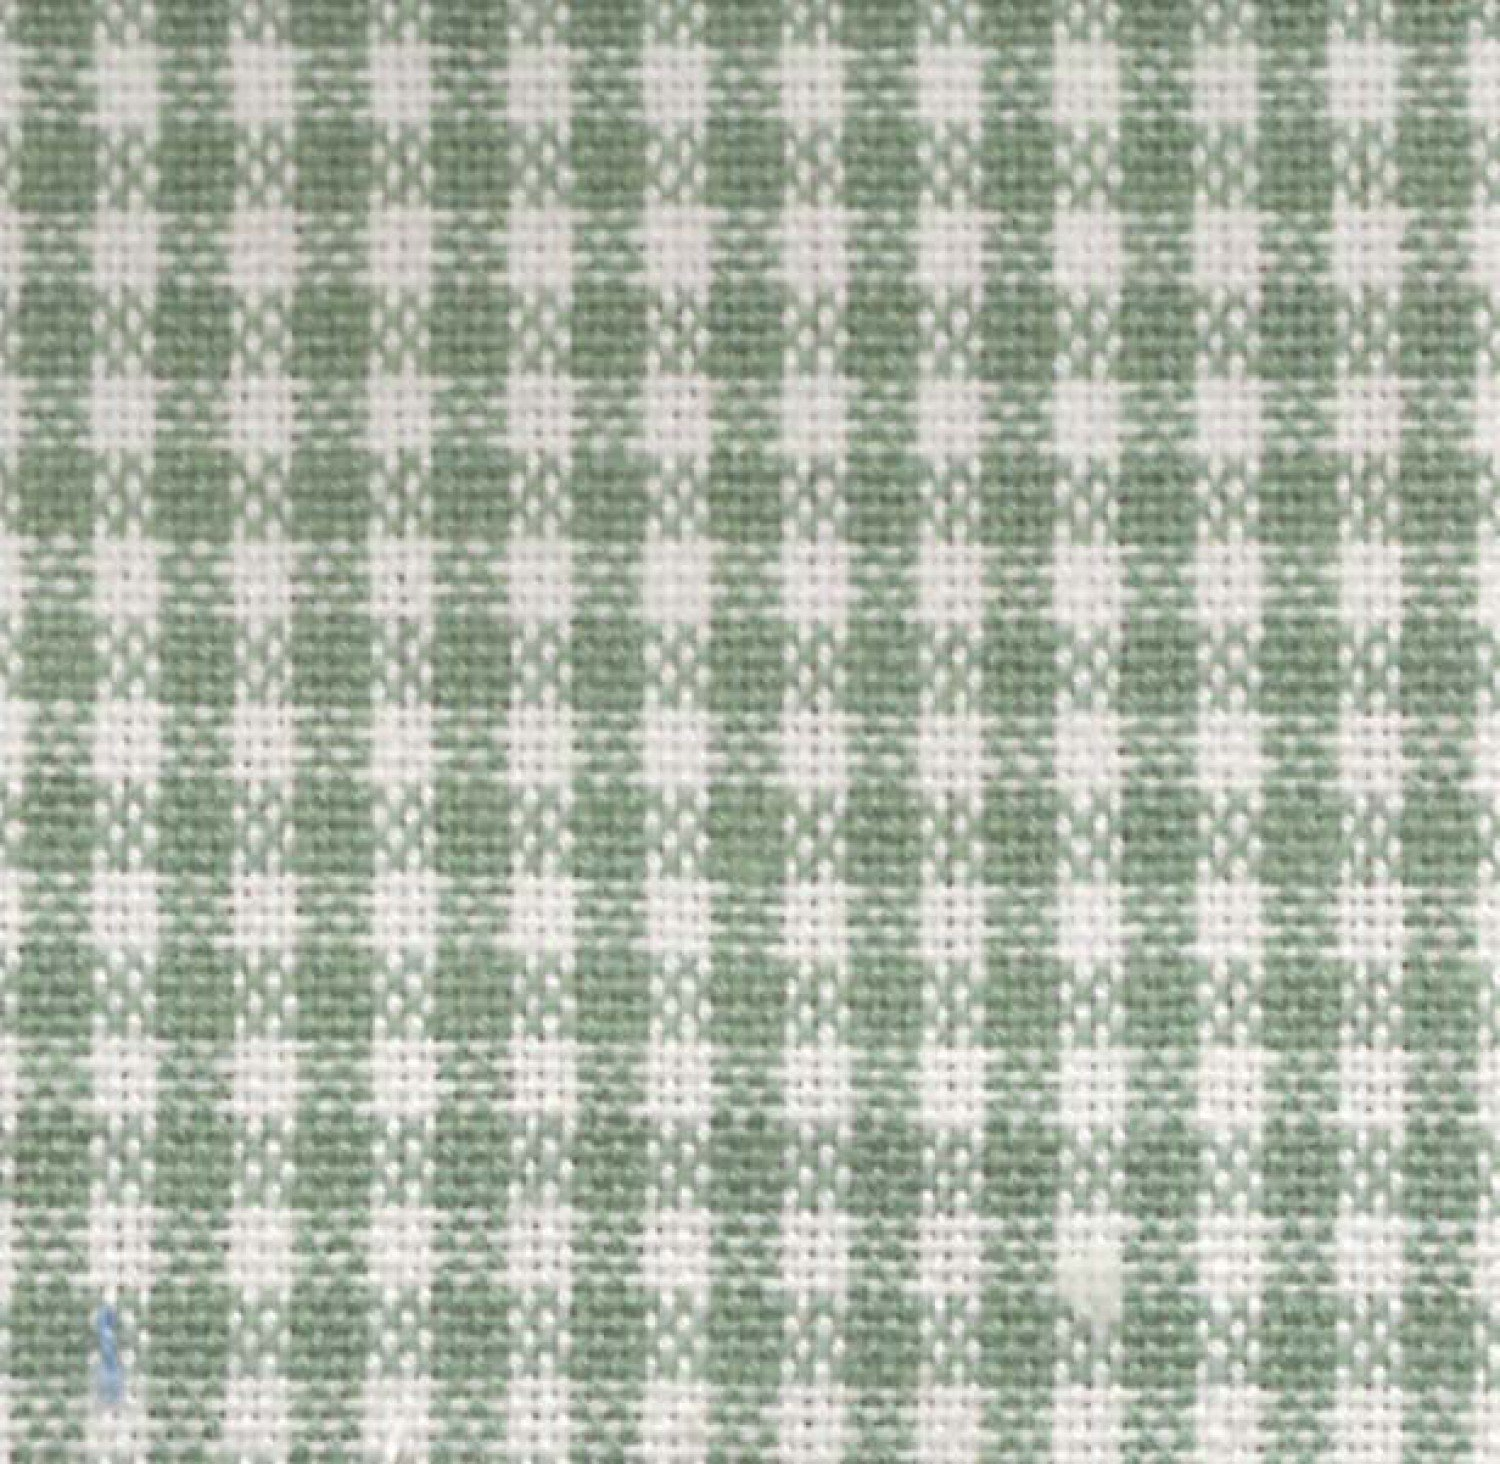 Tea Towel Mini Check Light Green/White